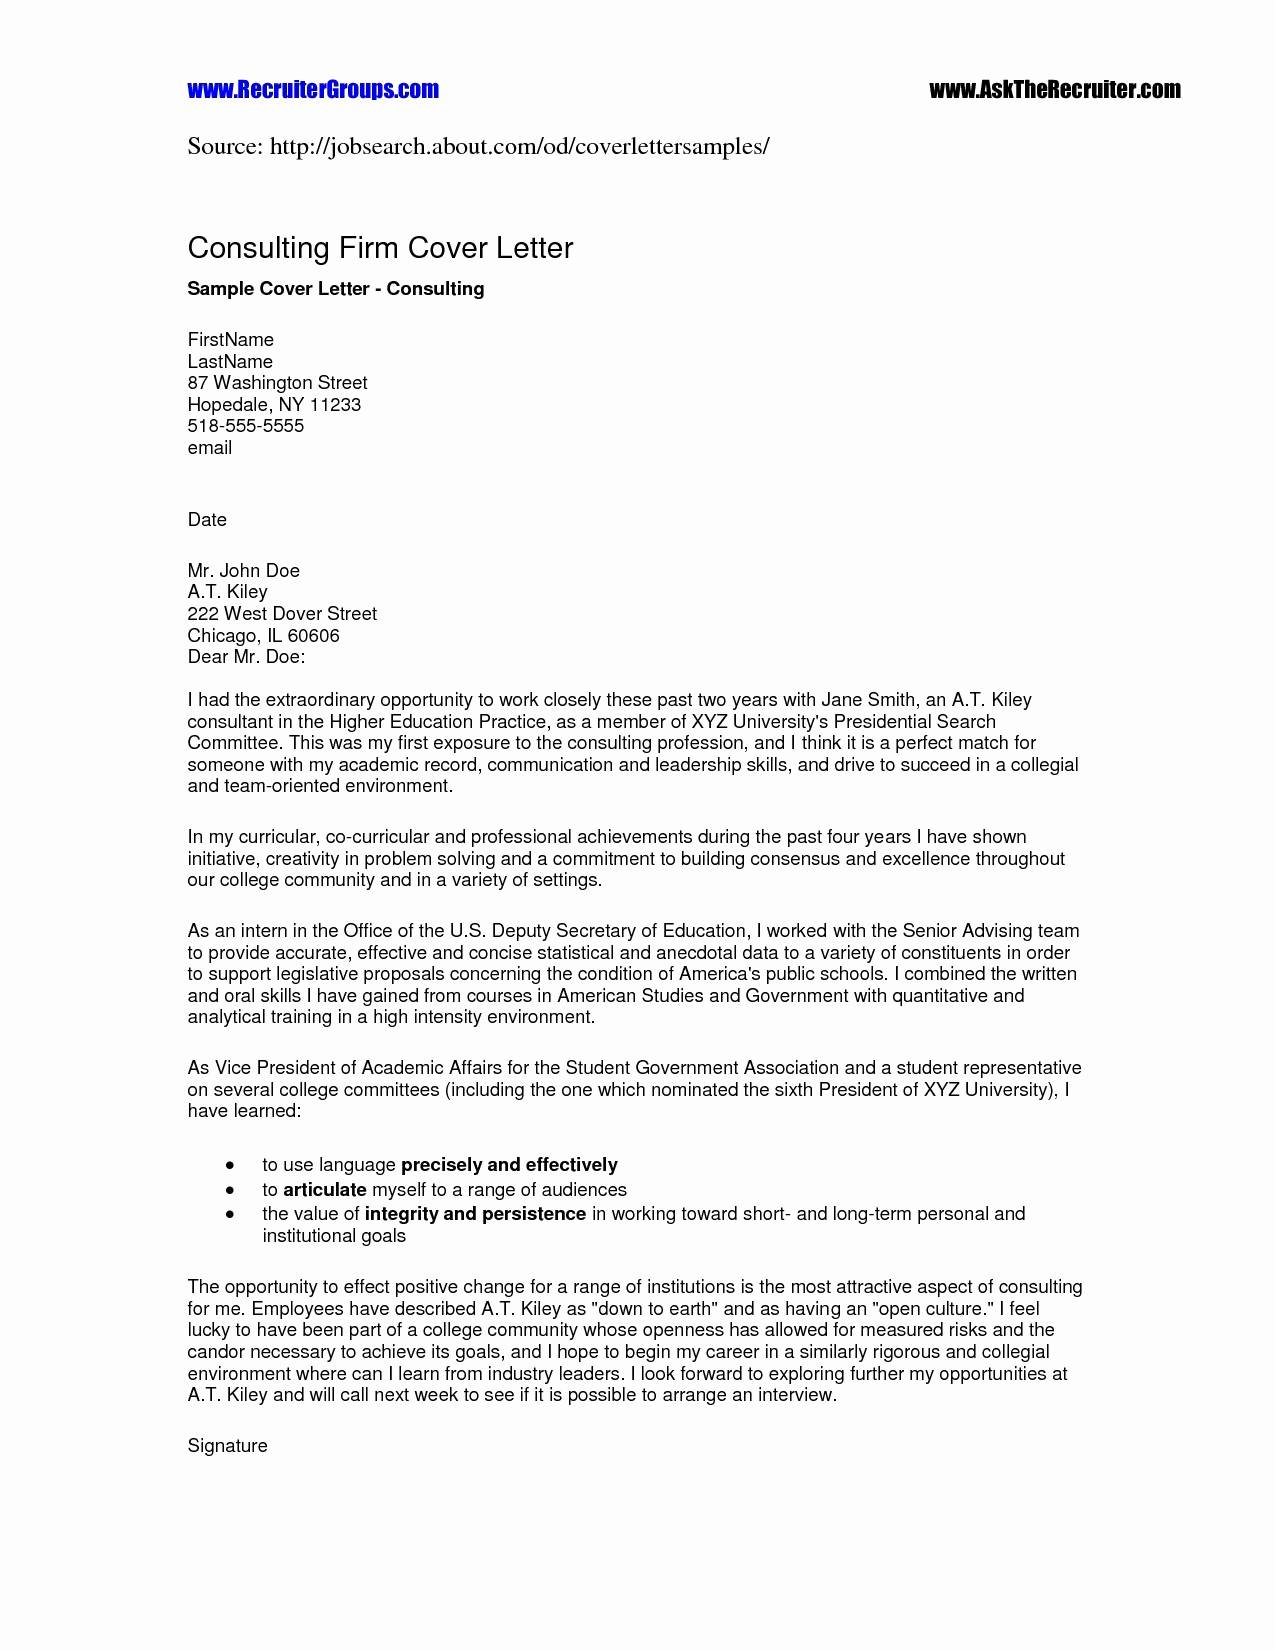 Letter Of Intent to Hire Template - Letter Intent to Hire Template Inspirational Engagement Letter